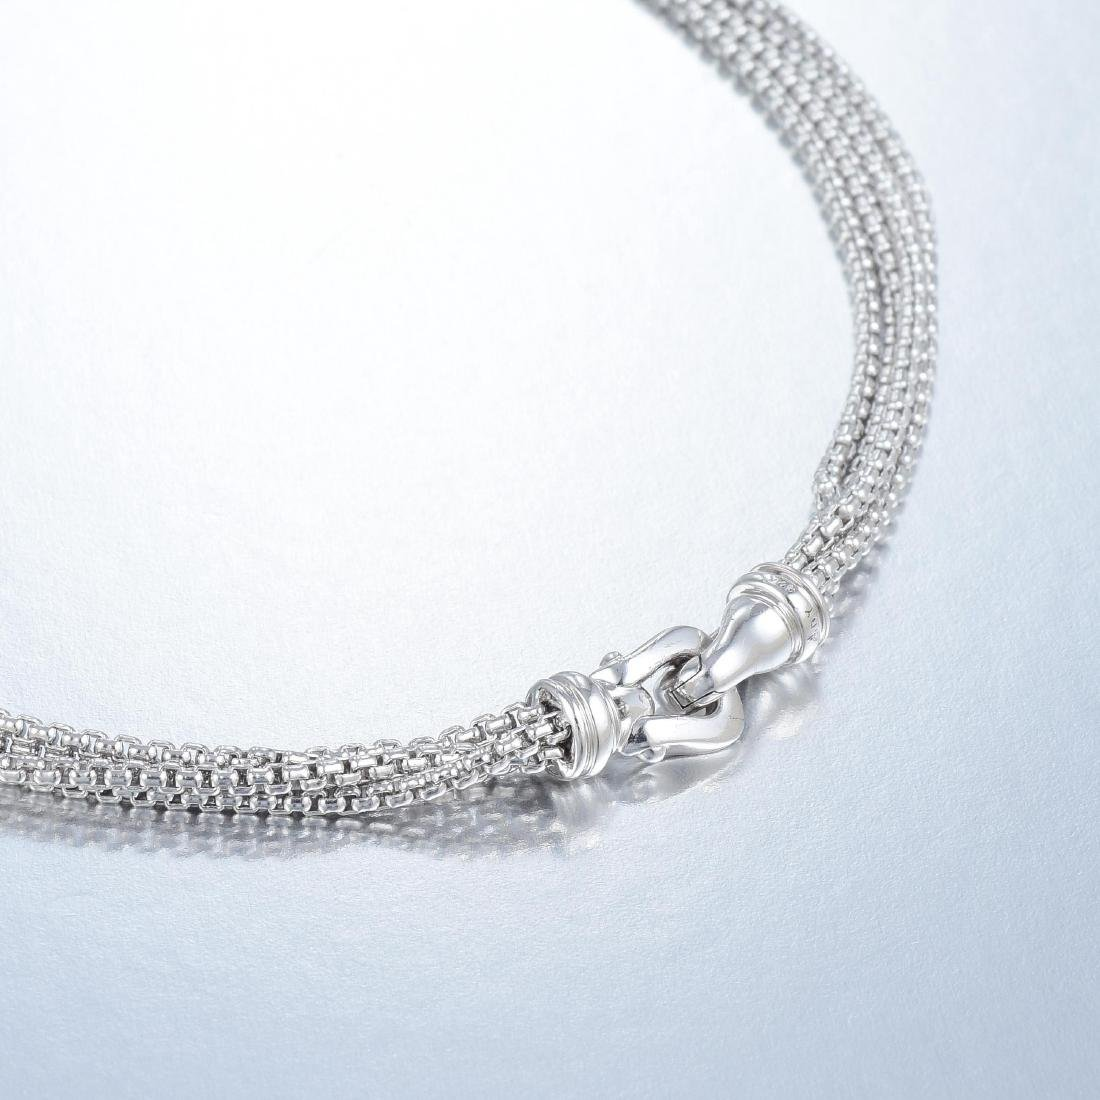 David Yurman Pearl Silver Necklace - 4